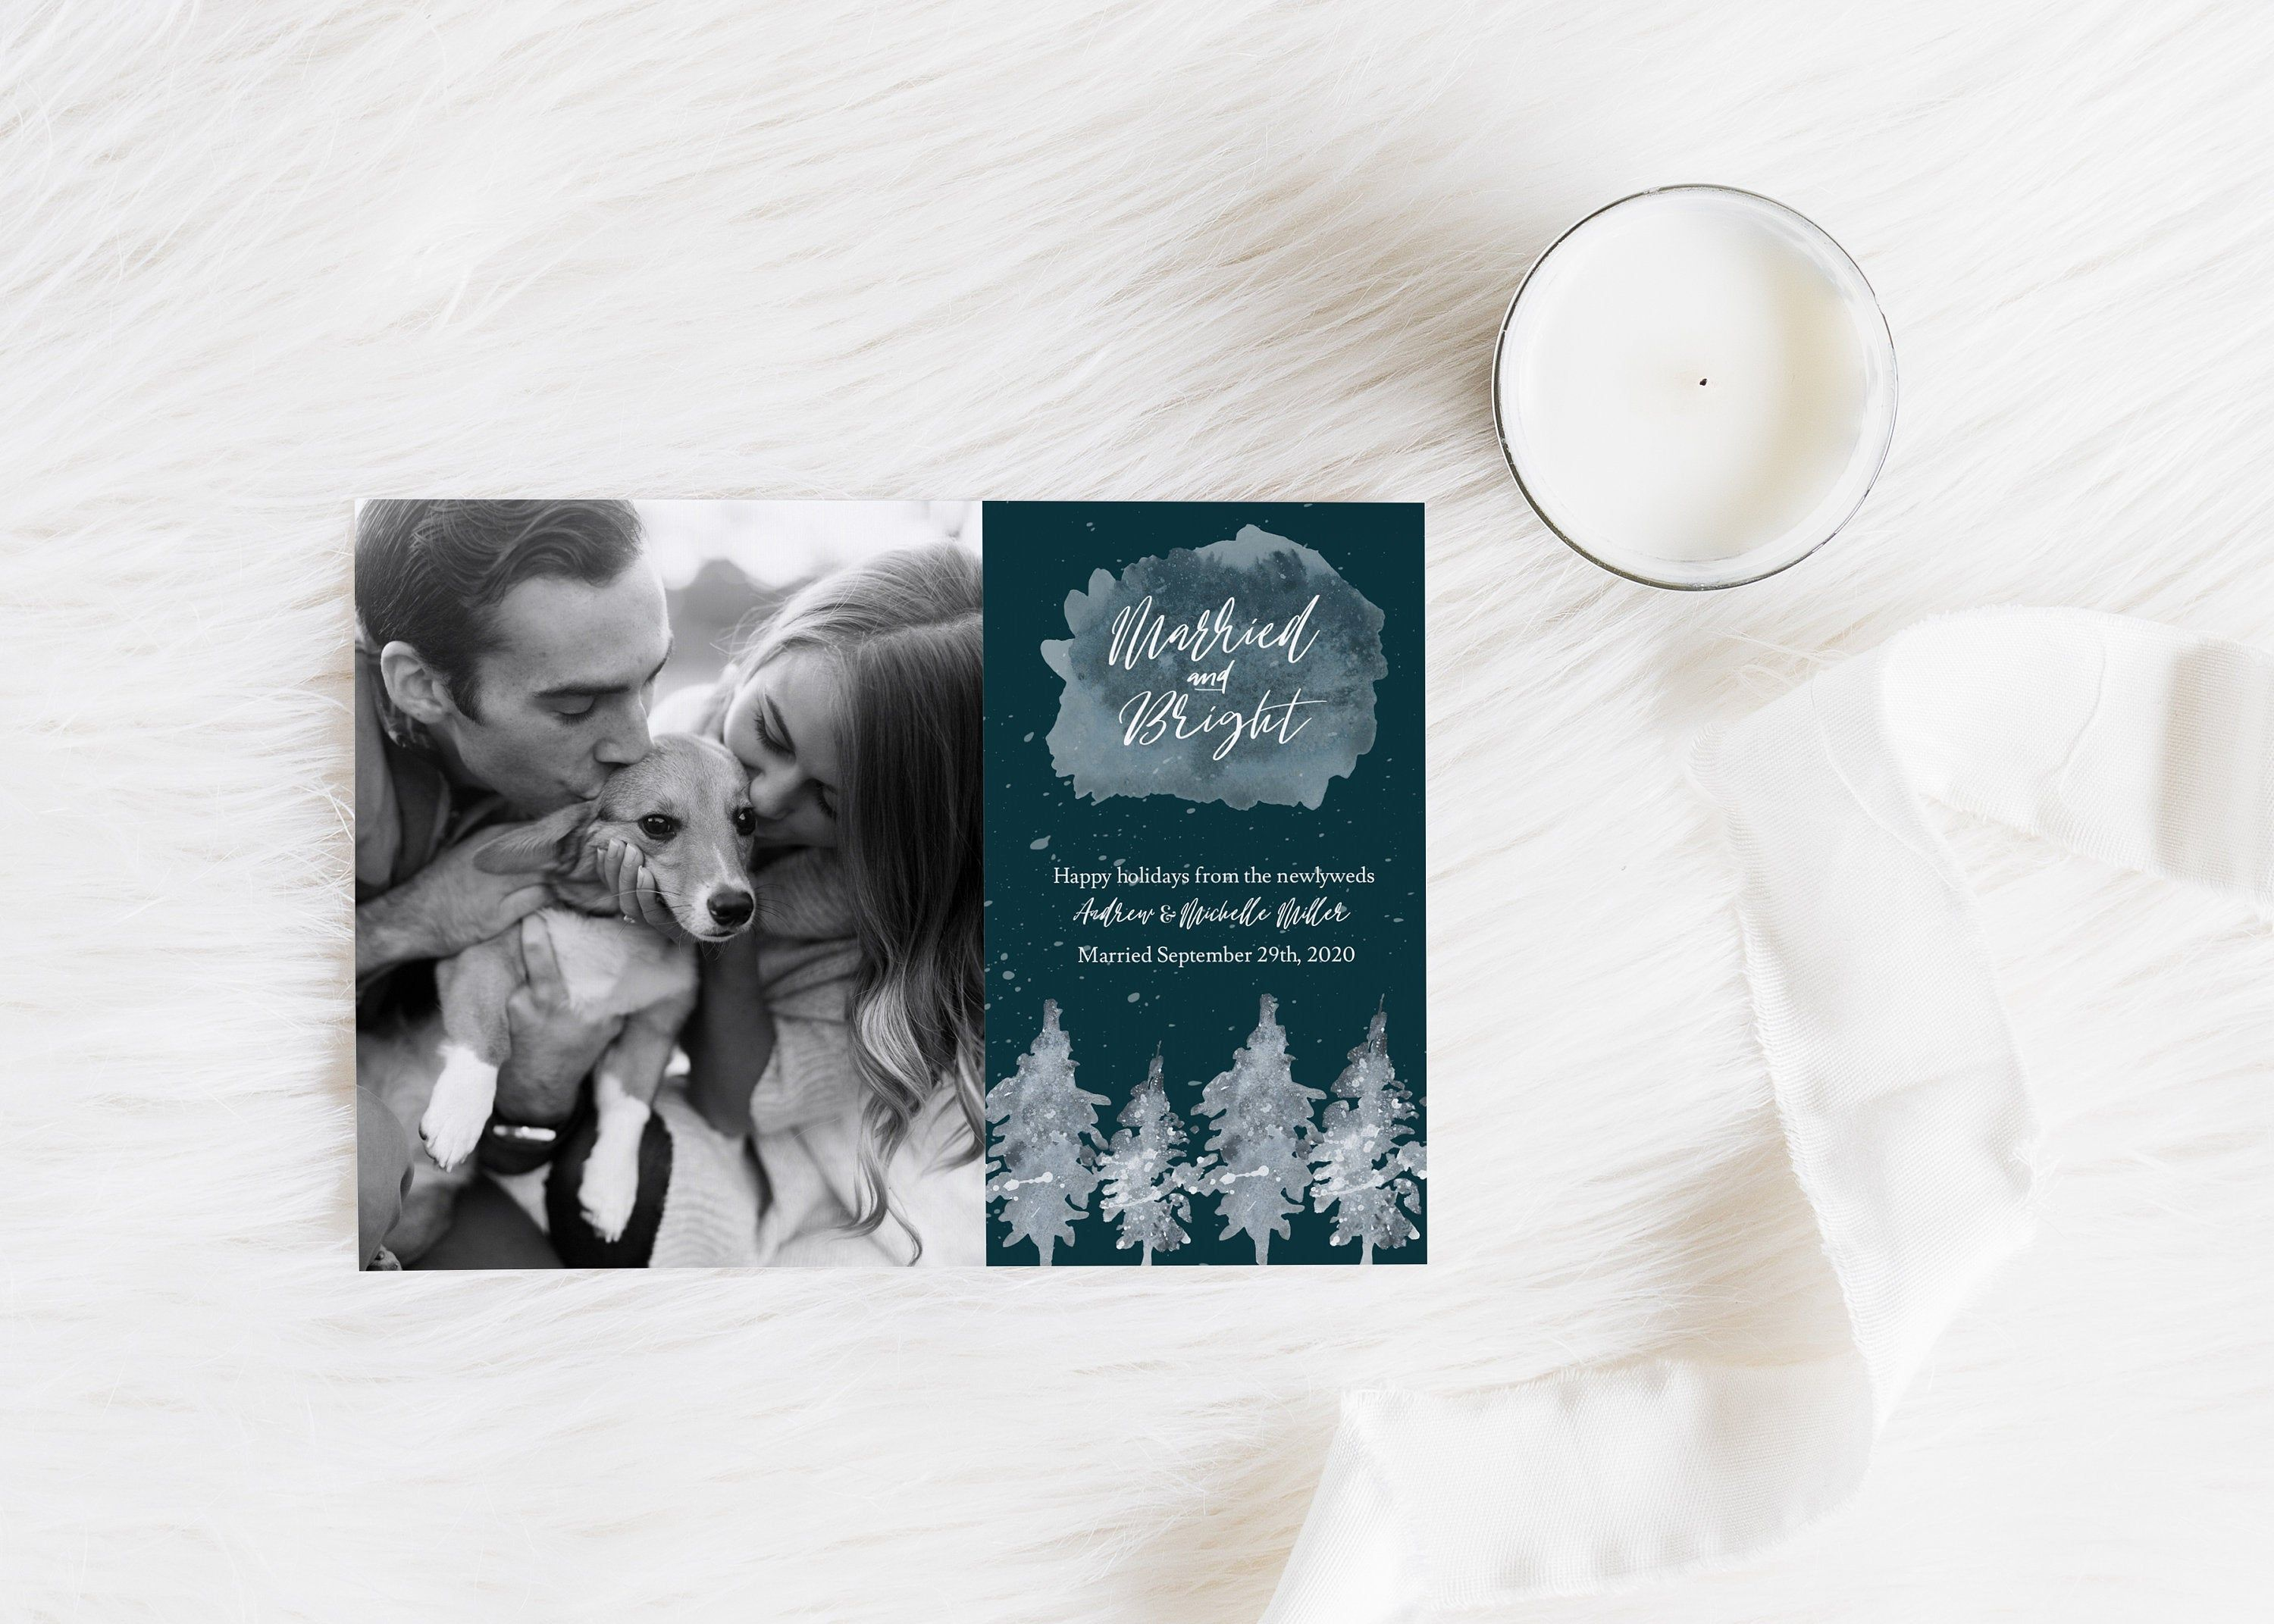 Married And Bright Christmas Card Marriage Announcement Etsy Christmas Card Template Christmas Cards Printable Art Designs